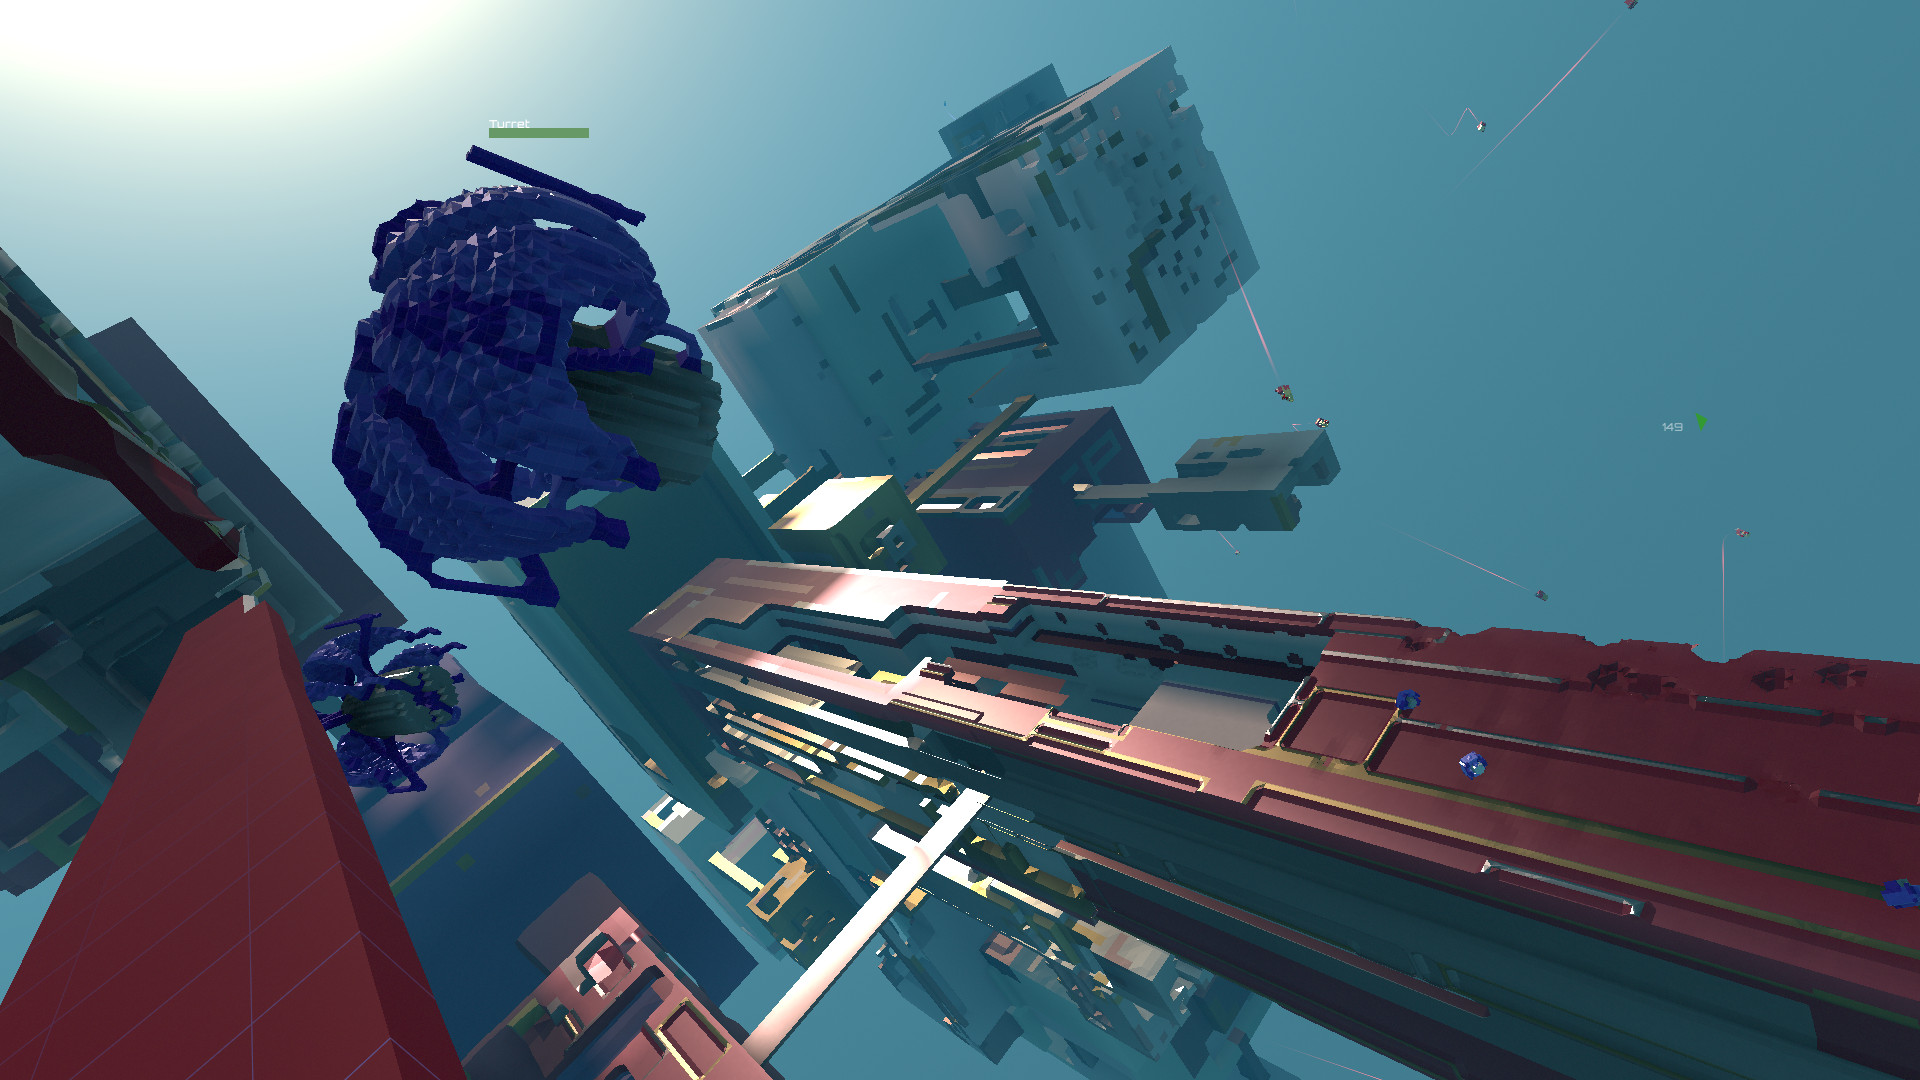 Avoyd in-game screenshot - Turret drones deployed by players are static. They scan space to detect nearby opposition drones and shoot at them. Because the game is taking place in zero gravity (6 degrees of freedom), it can be a good idea to place turrets so they triangulate a wide volume but with their back to a surface for protection. Currently players can deploy up to four turrets.